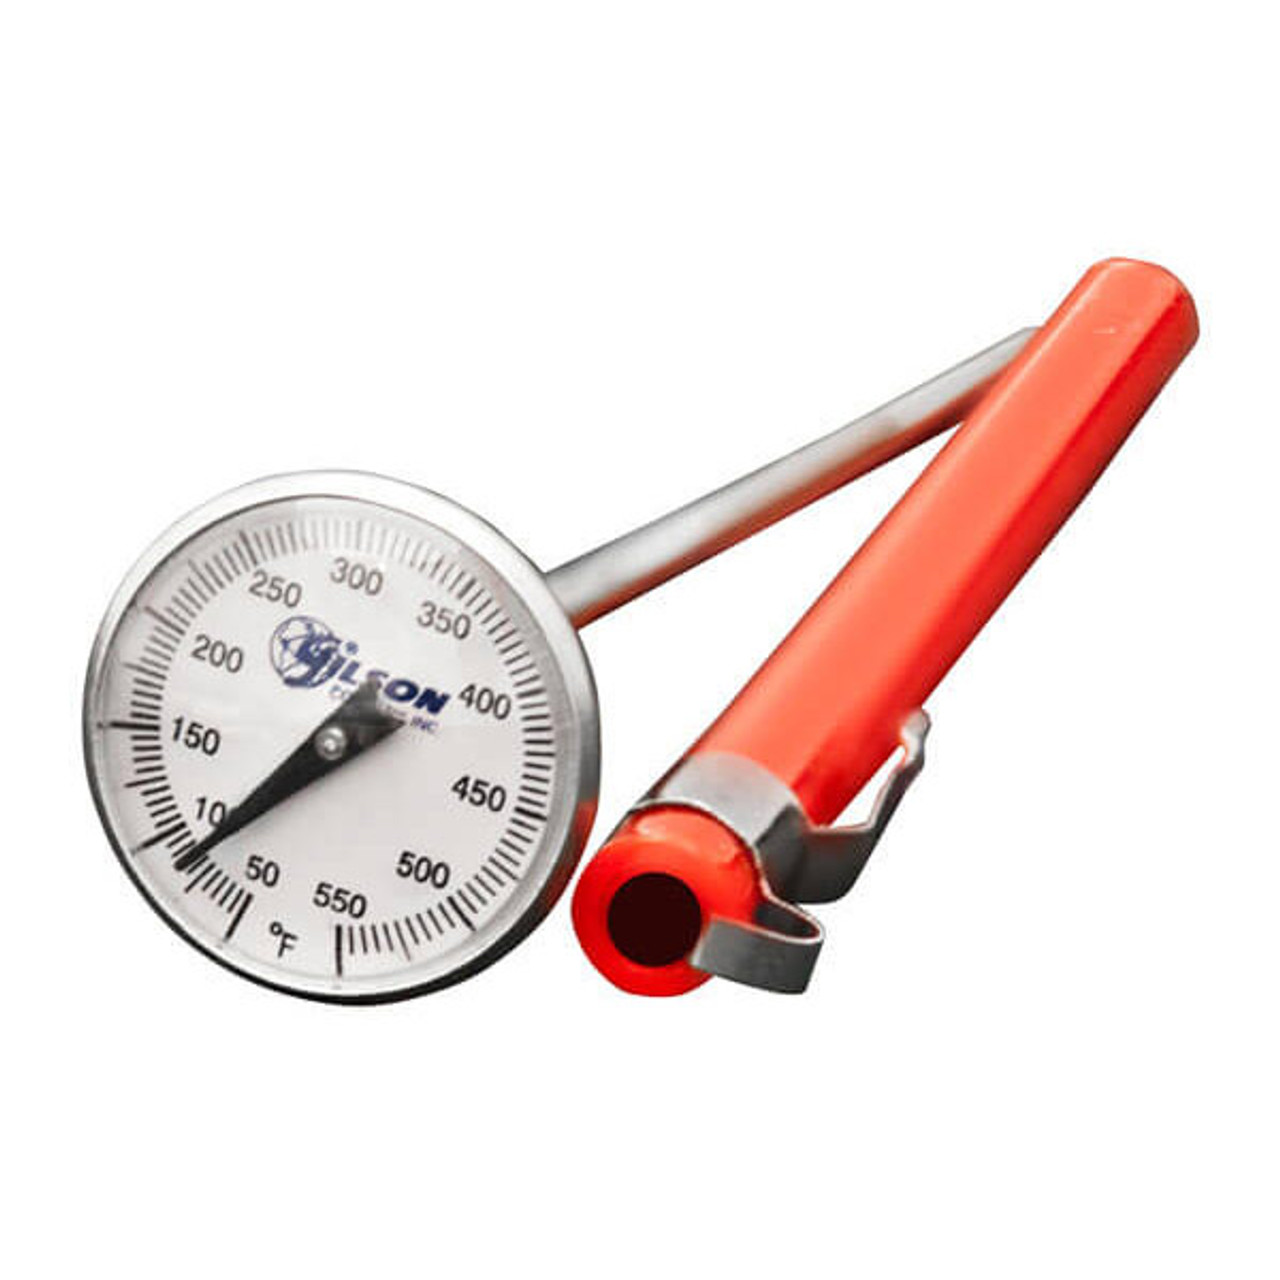 Pocket Dial Thermometer 50 To 550f 0 15 Stem 1 Dial Pocket Thermometers And Thermometers Certified Material Testing Products